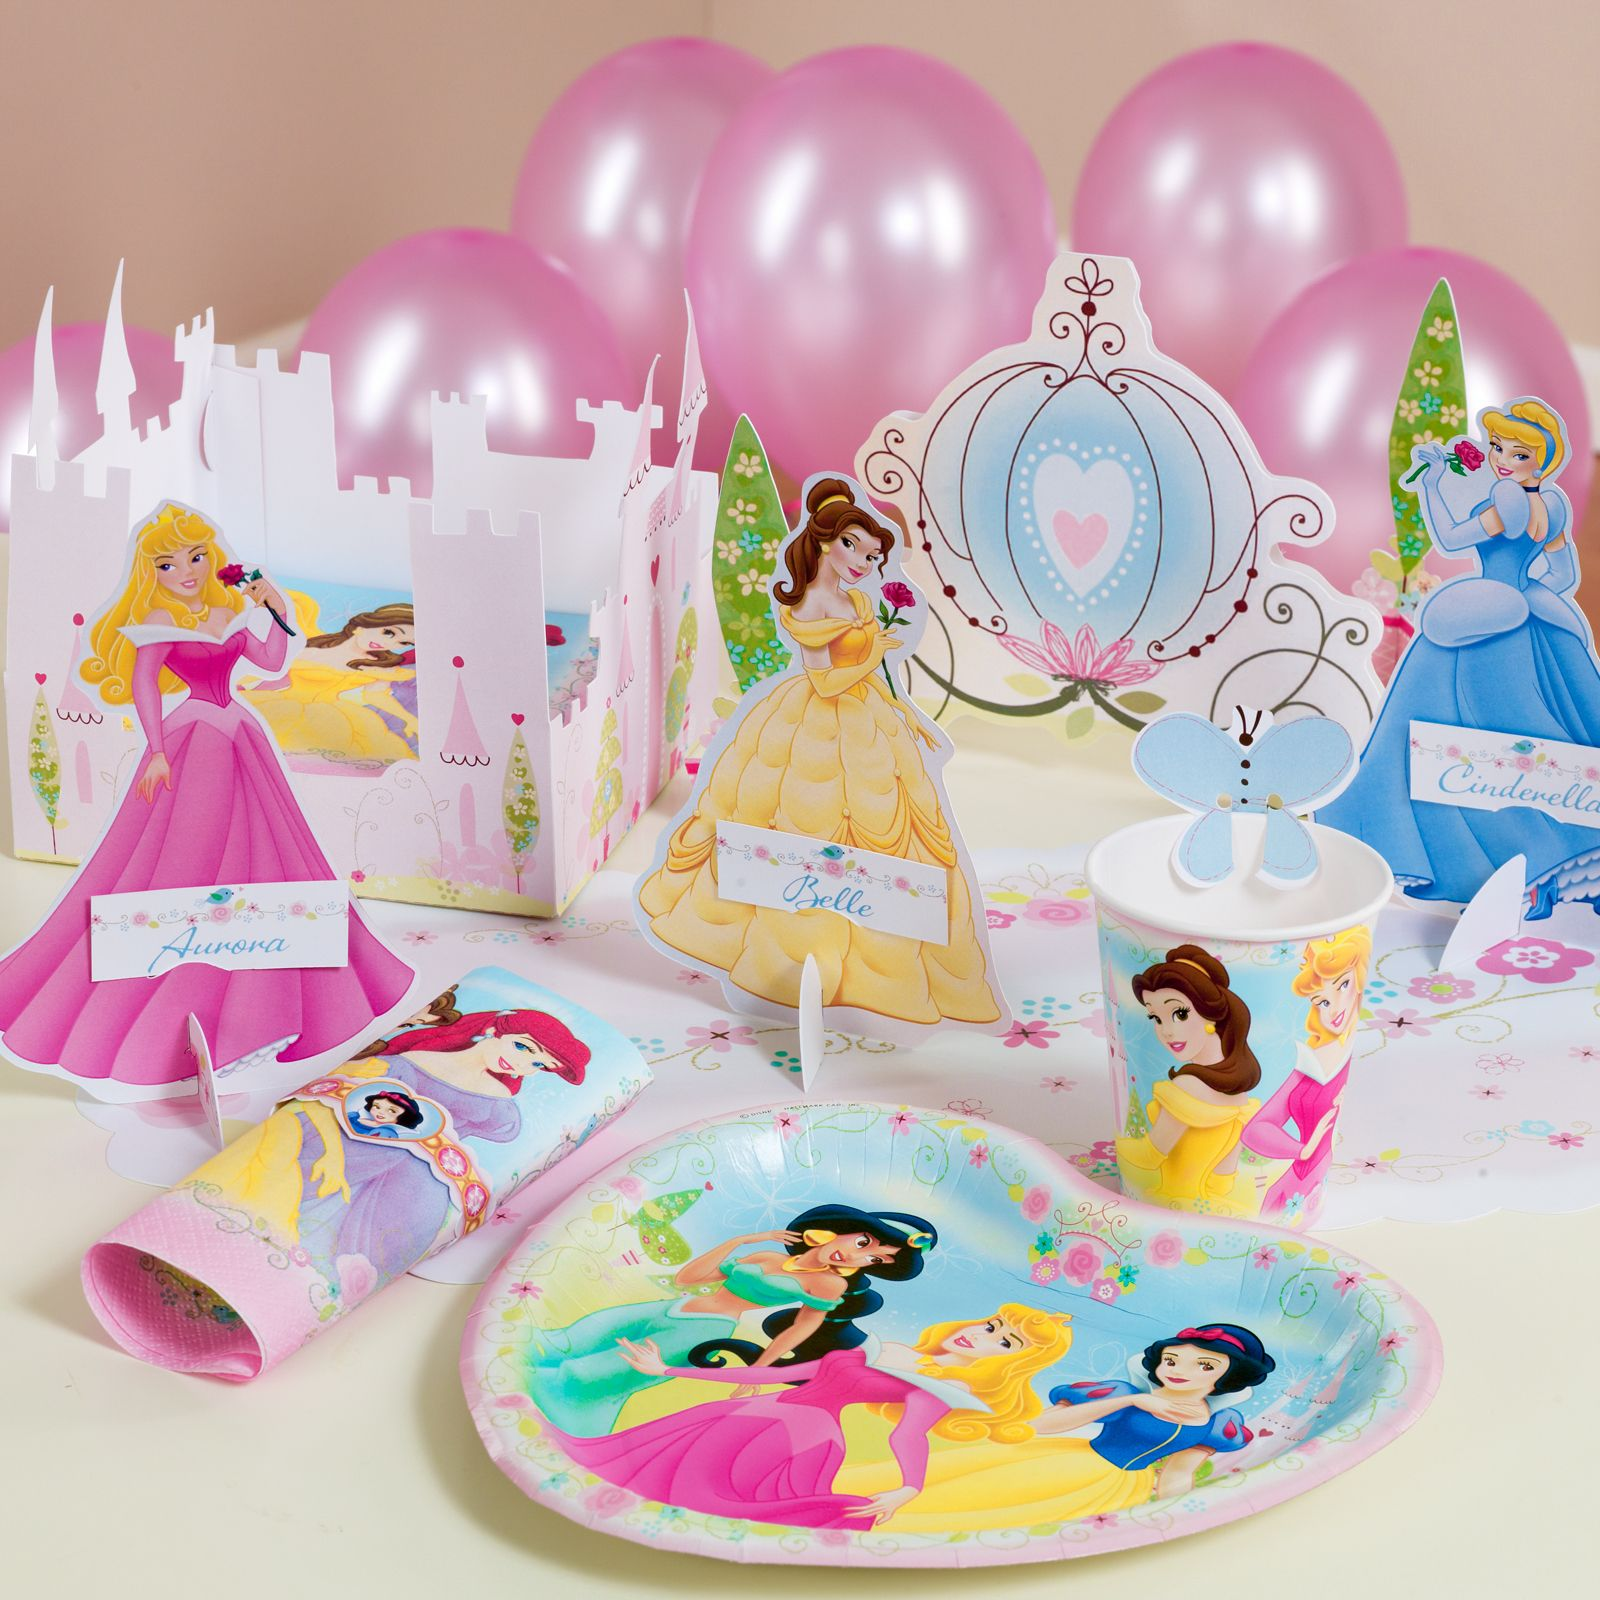 Disney Princess Decor Book | #DisneyPrincessWMT | Pinterest ...